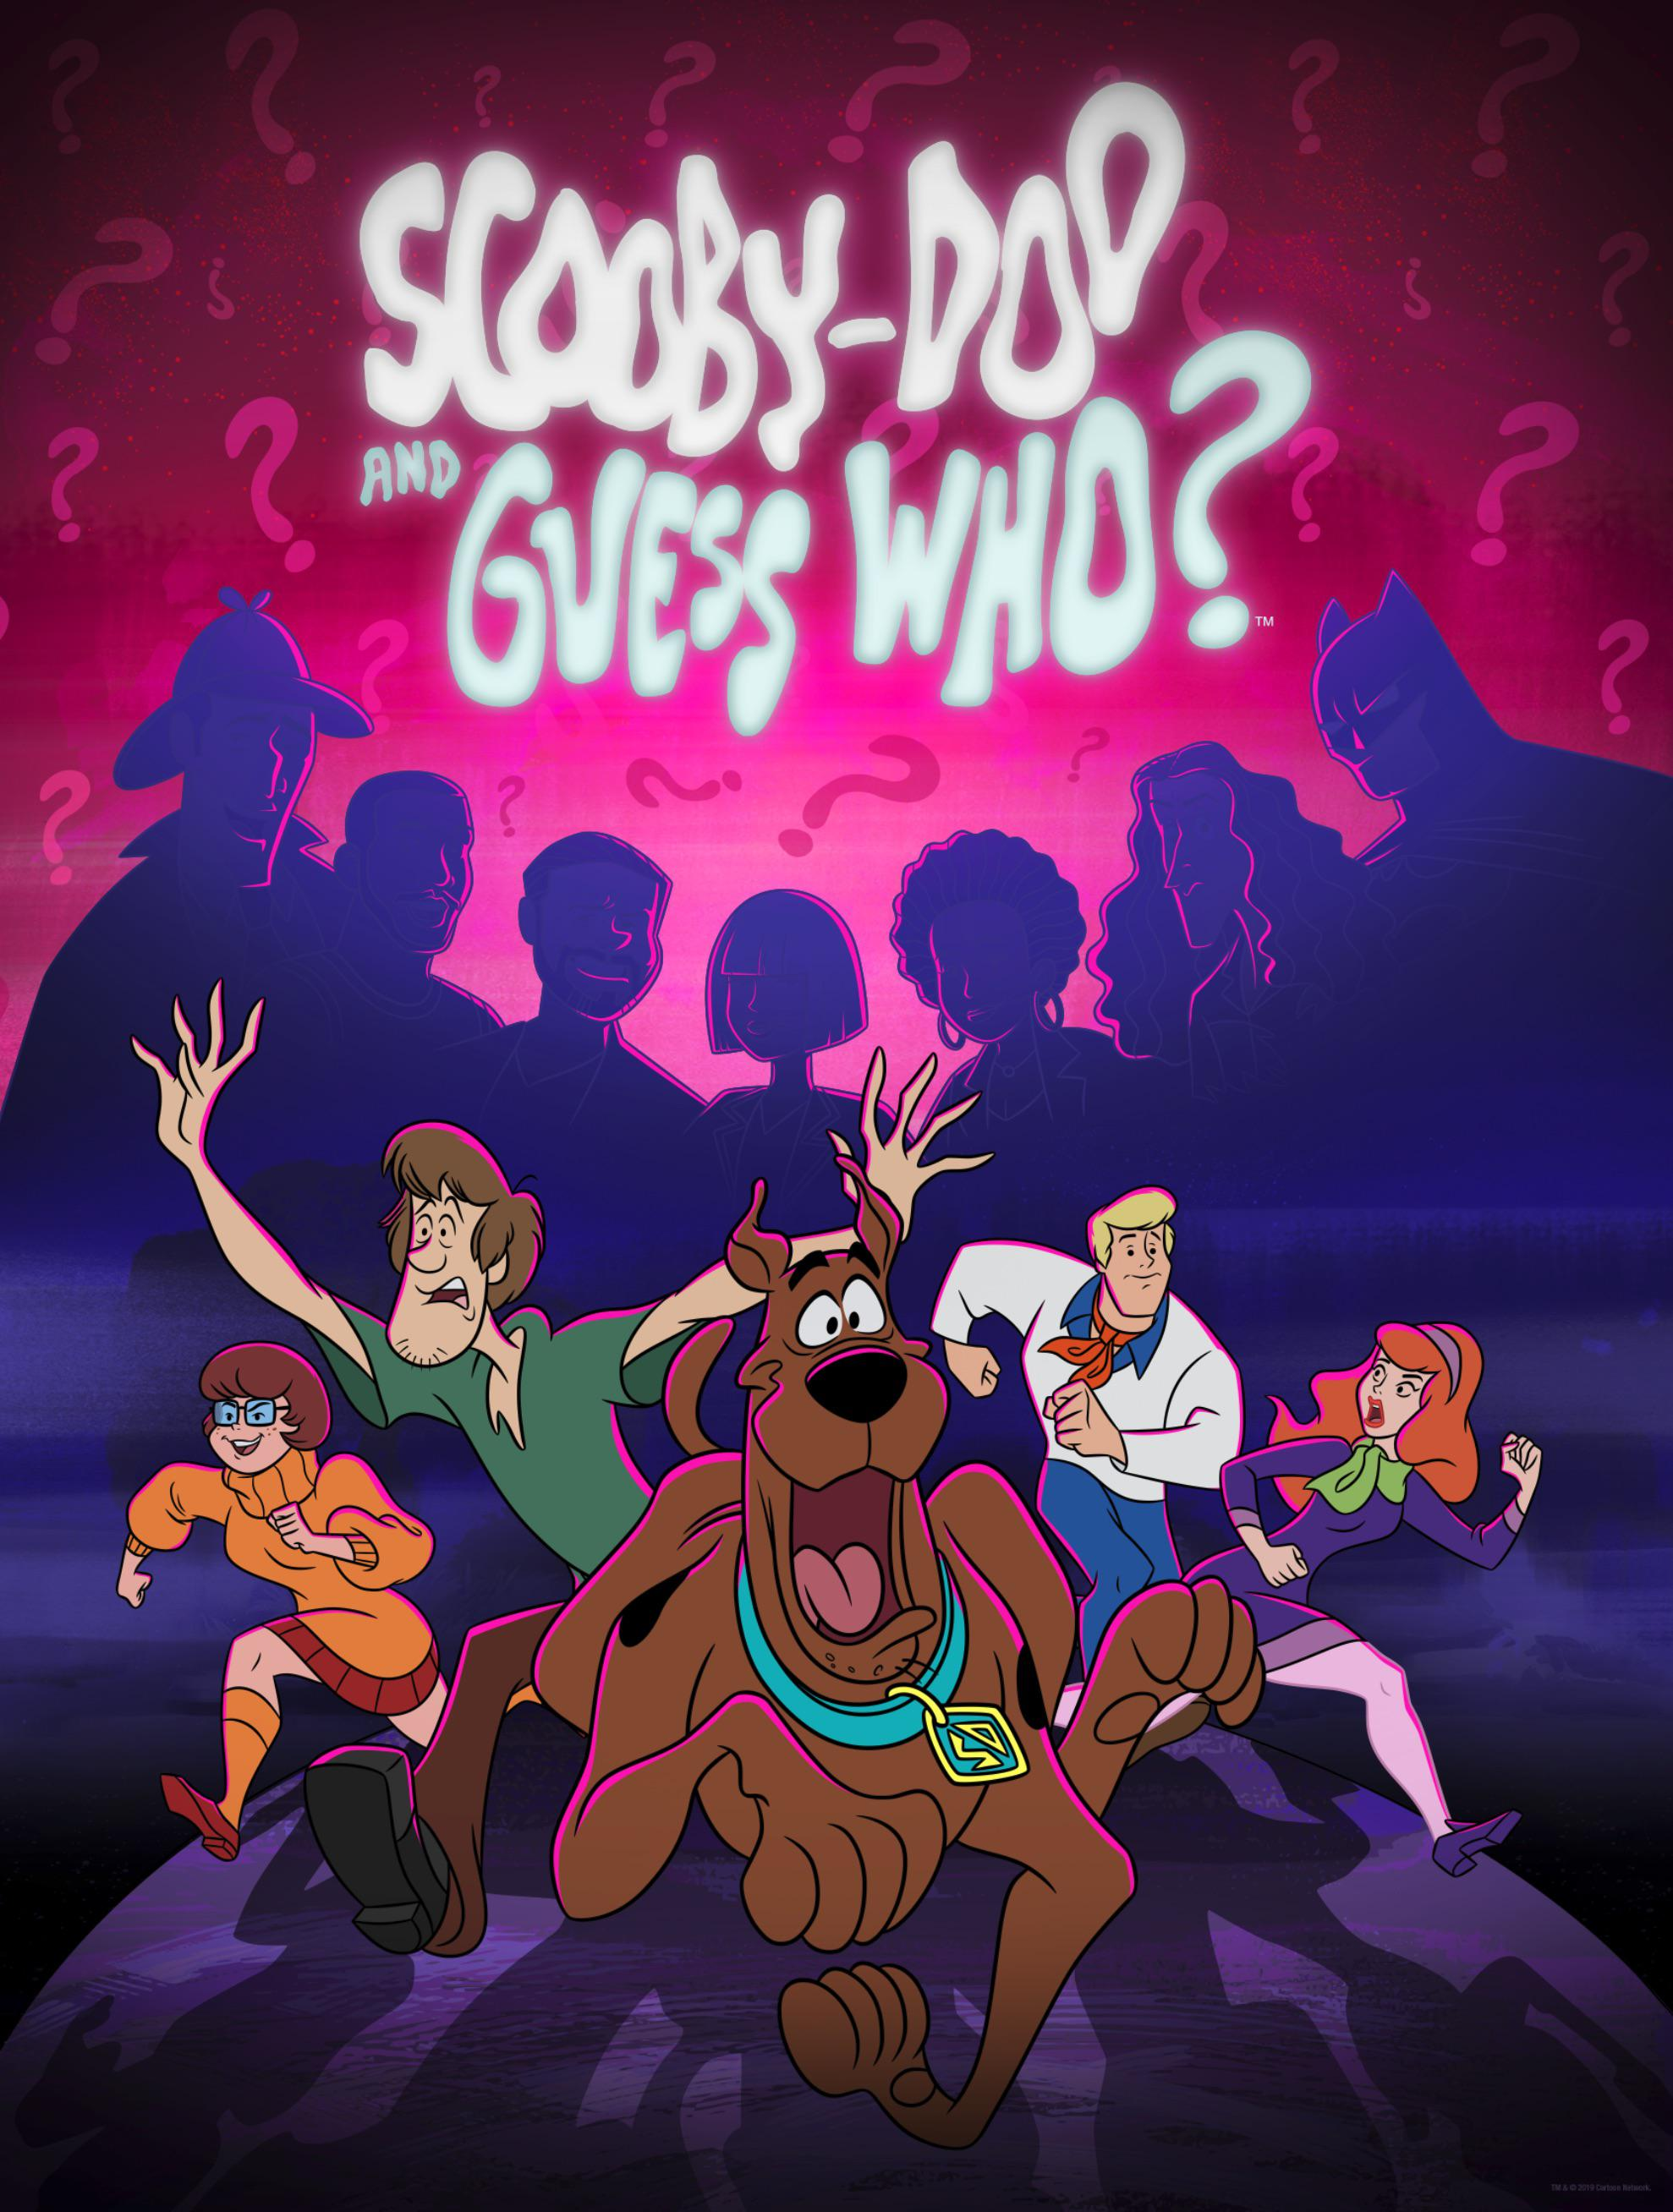 Scooby-Doo and Guess Who? (TV Series 2019– ) - IMDb